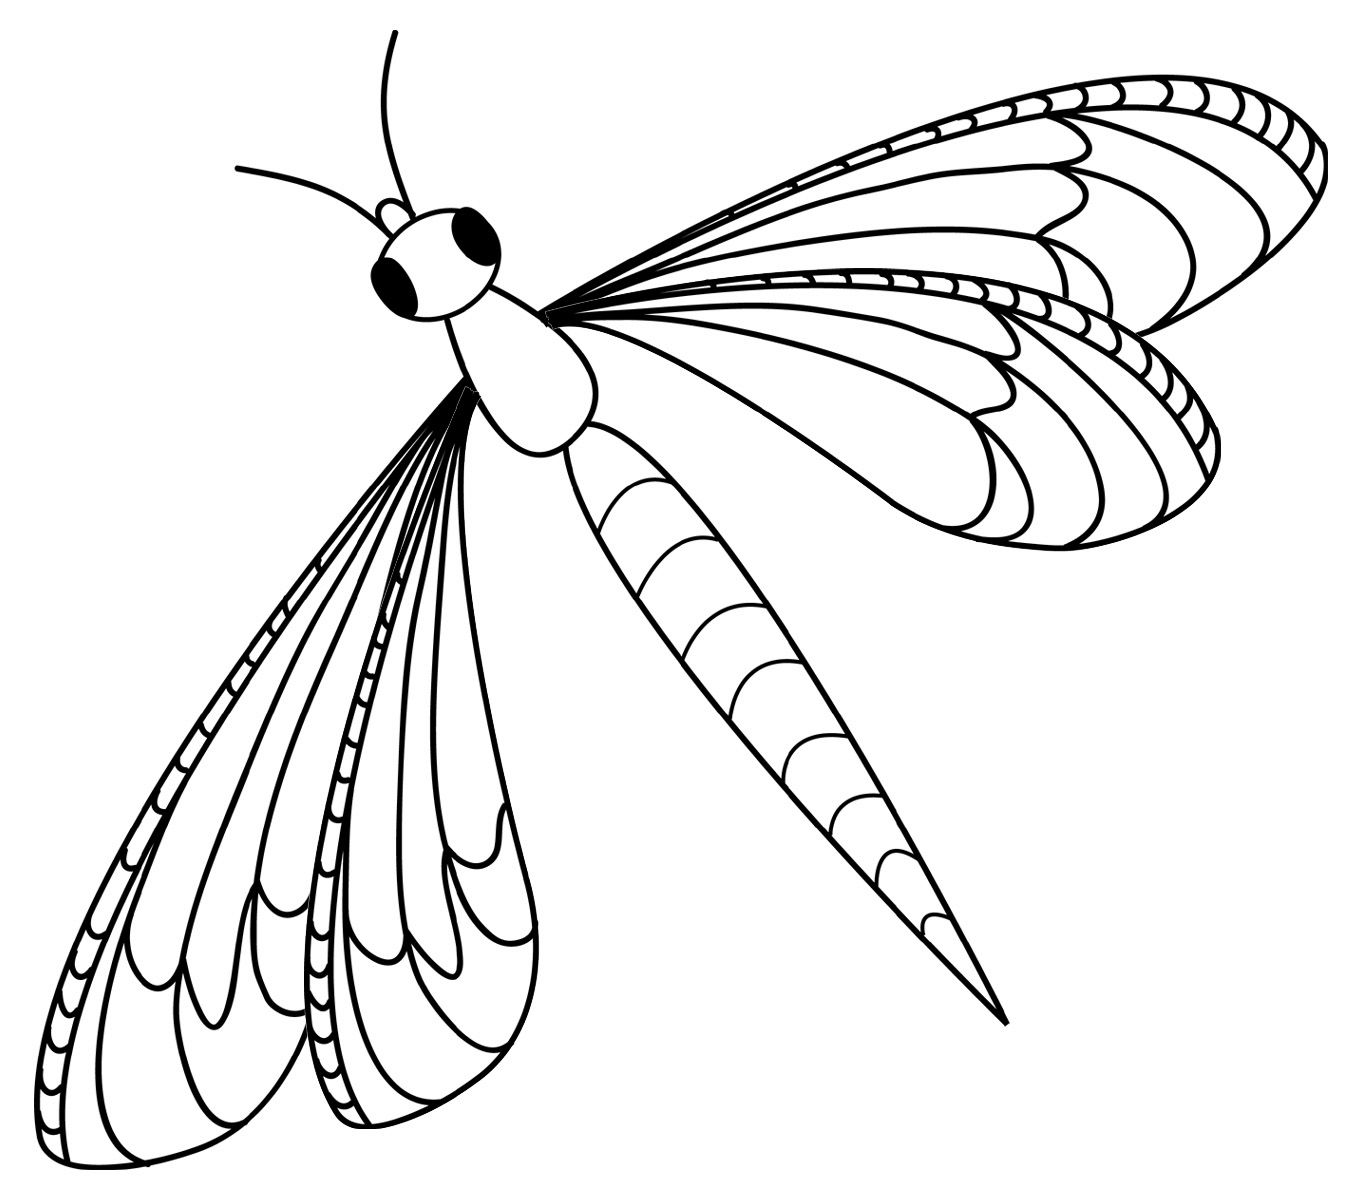 Dragonfly Clipart Free I0 Jpg 1362 1200 Insect Coloring Pages Dragonfly Images Butterfly Coloring Page